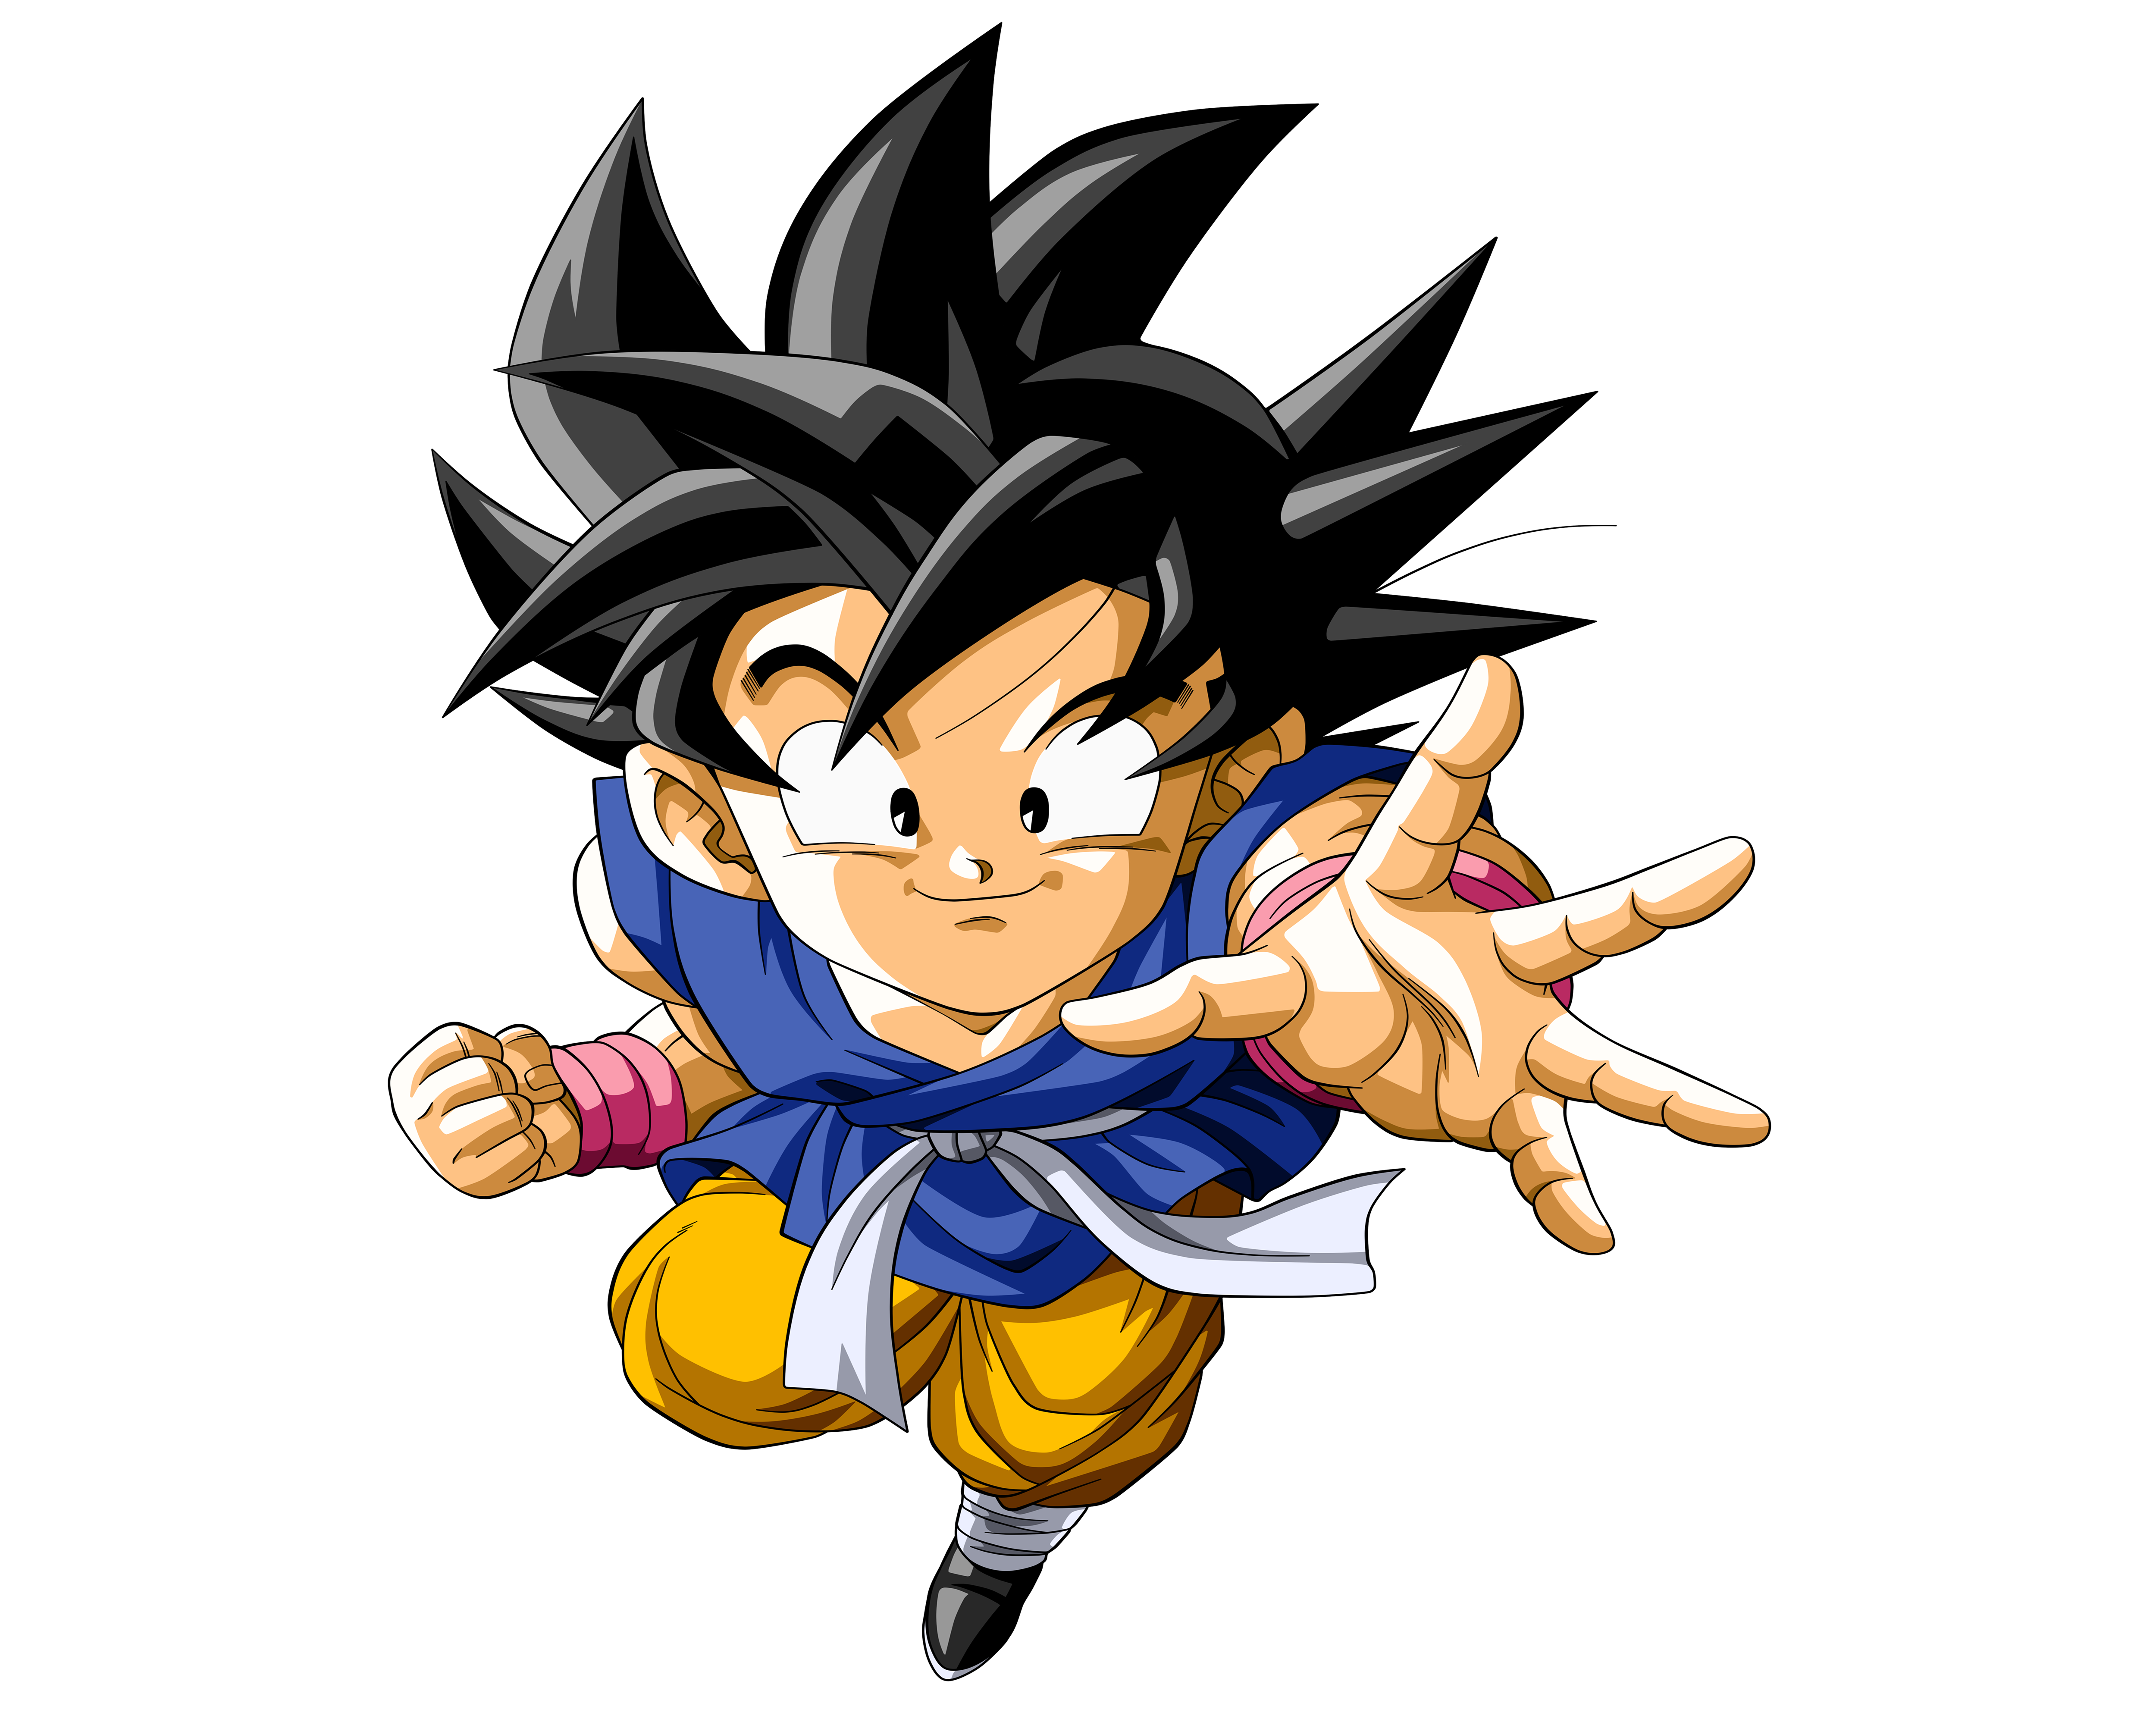 Kid Goku 4k Ultra Hd Wallpaper Background Image 5000x4000 Id